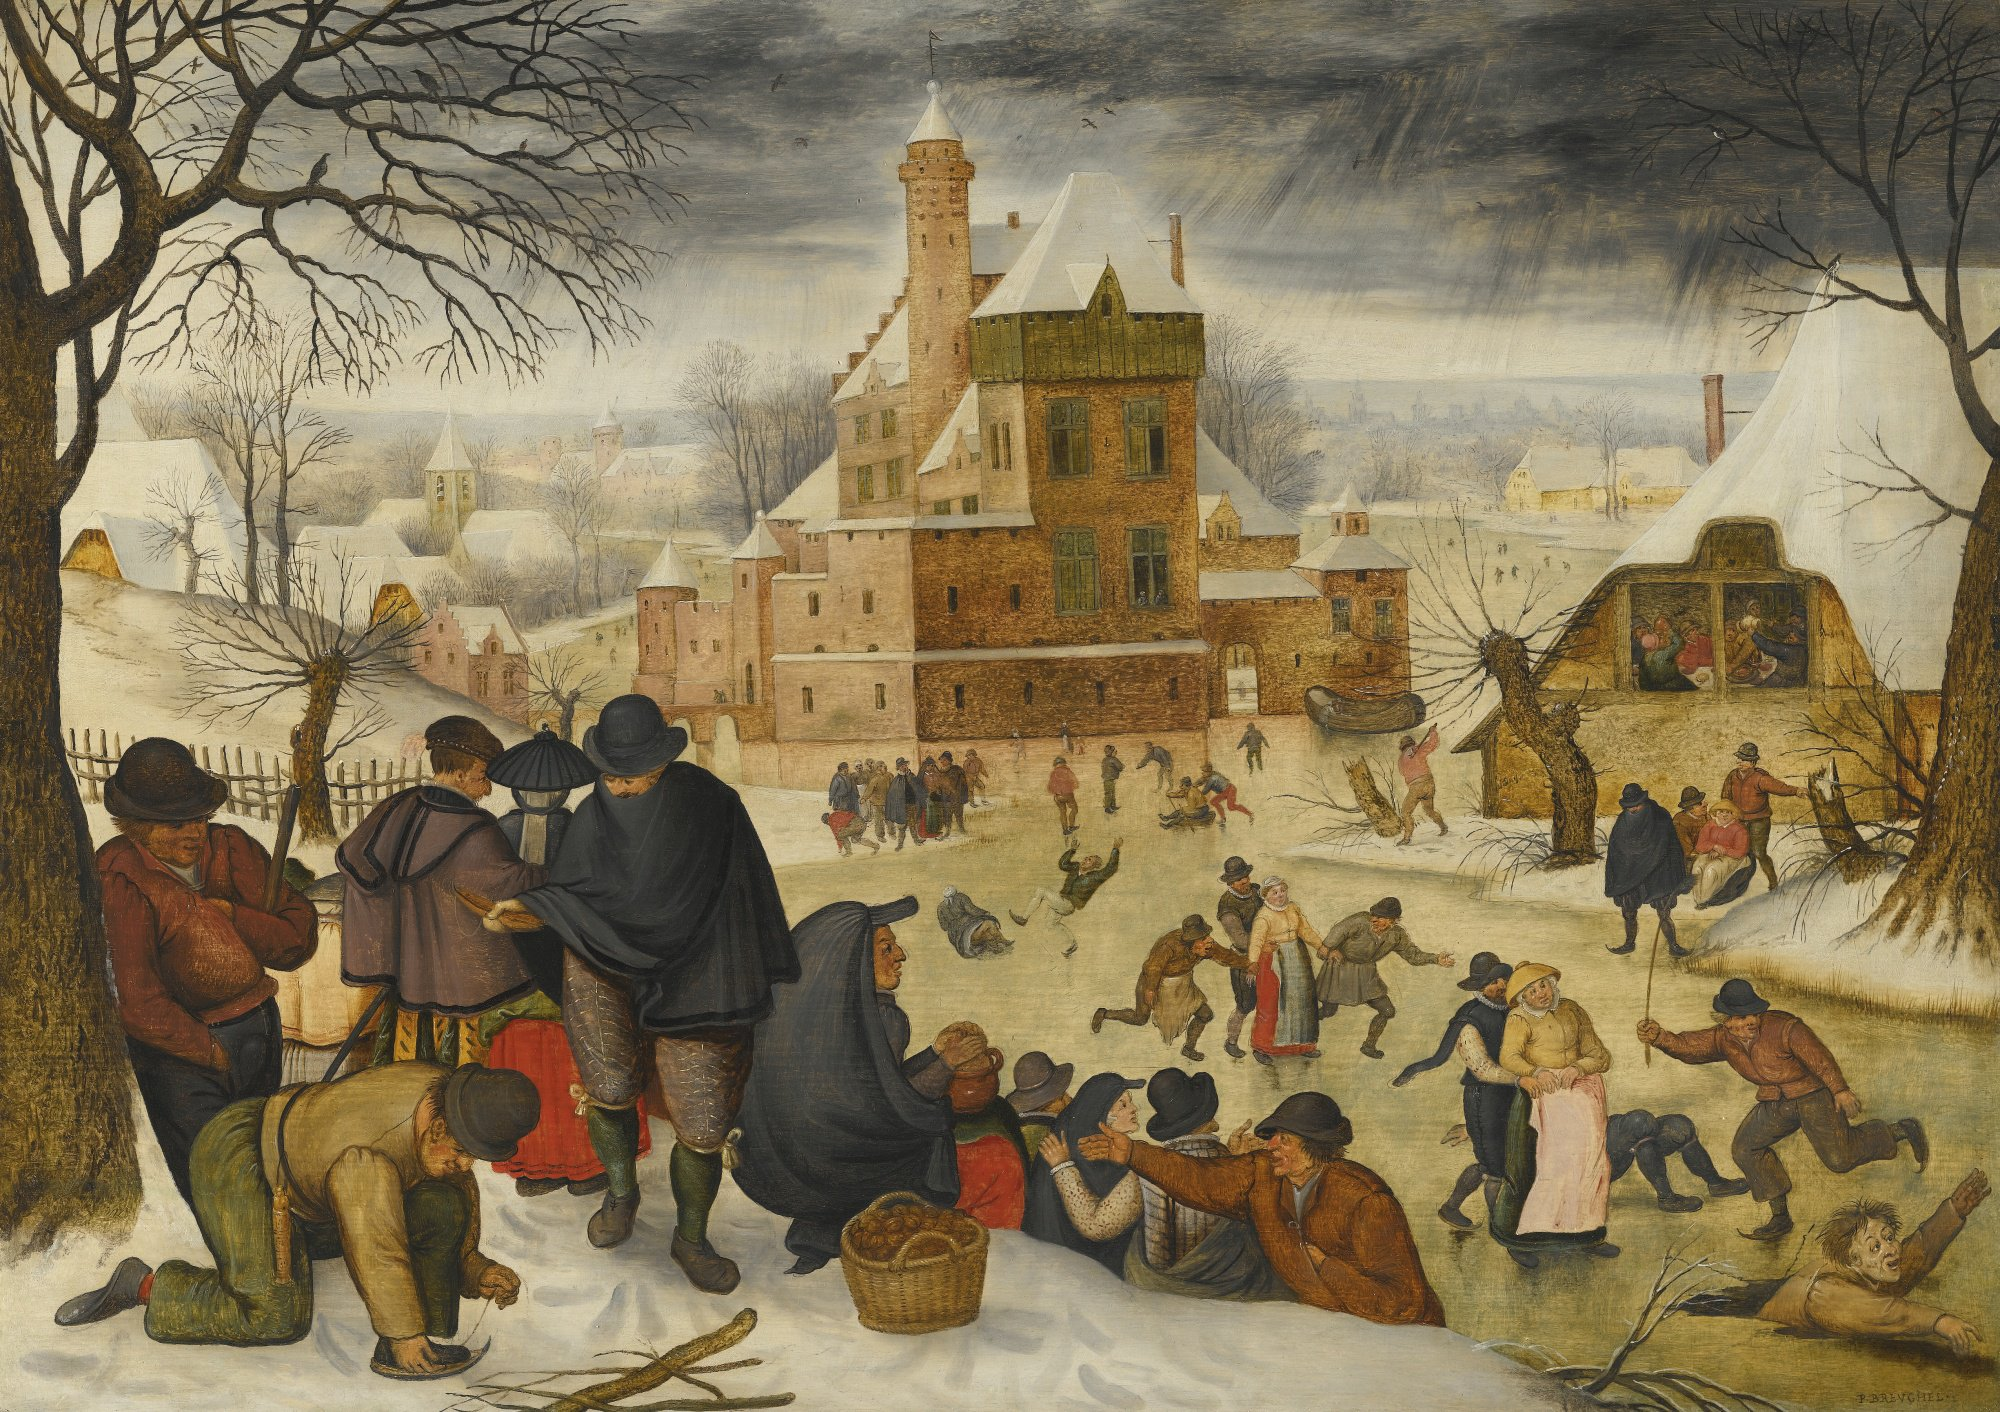 In 1616 the artist Pieter Bruegel foresaw Trout Lake as everyone was imagining it today: https://t.co/Mo1UnNNXIK